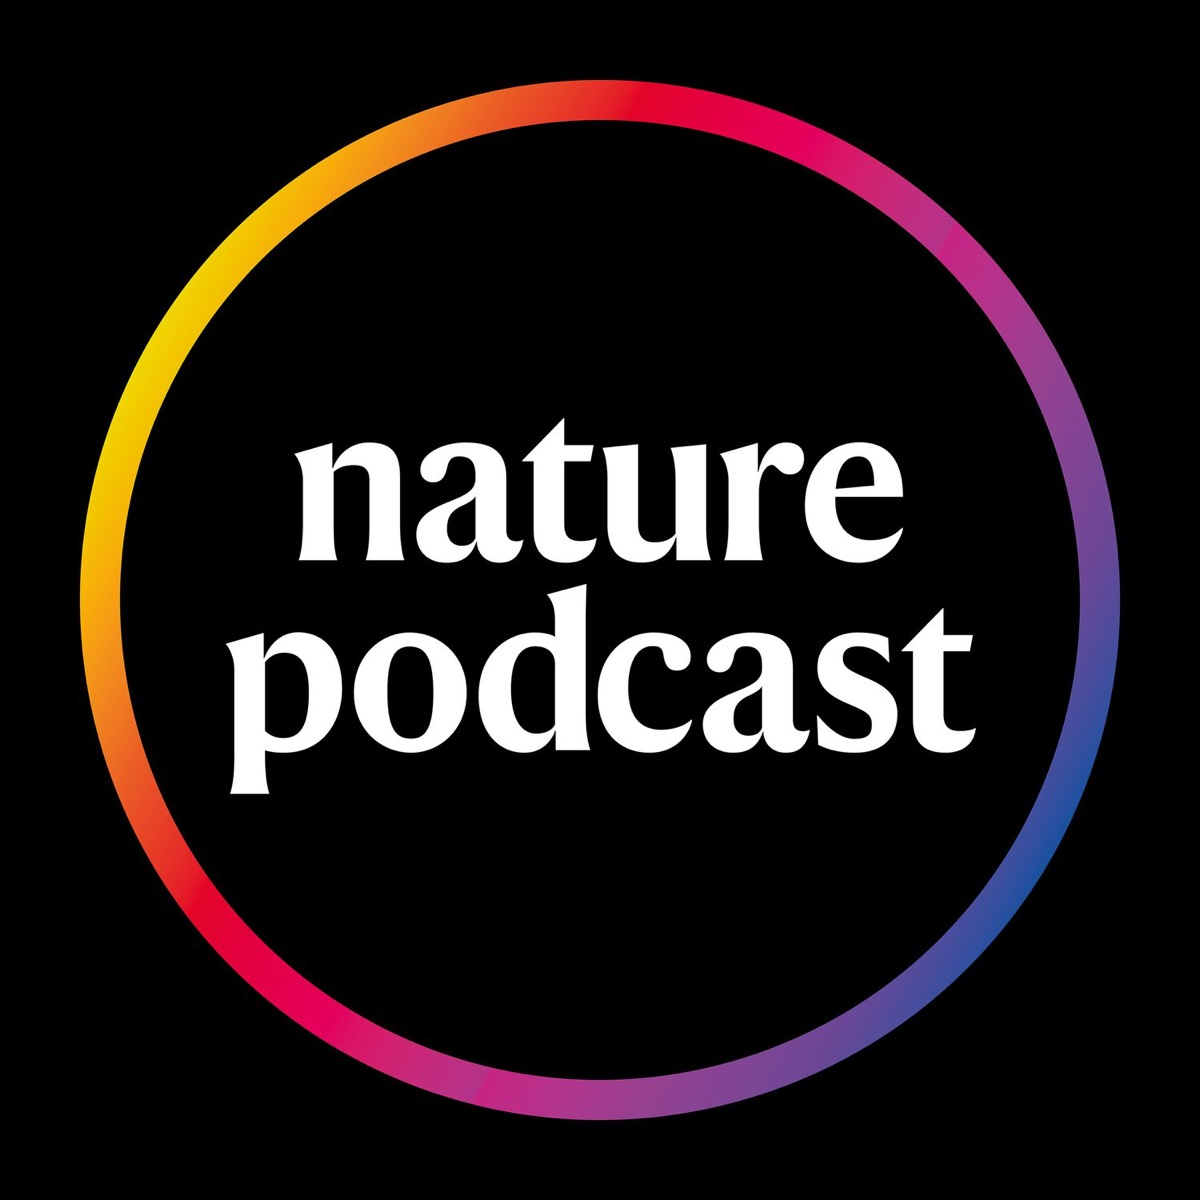 Natures podcast.